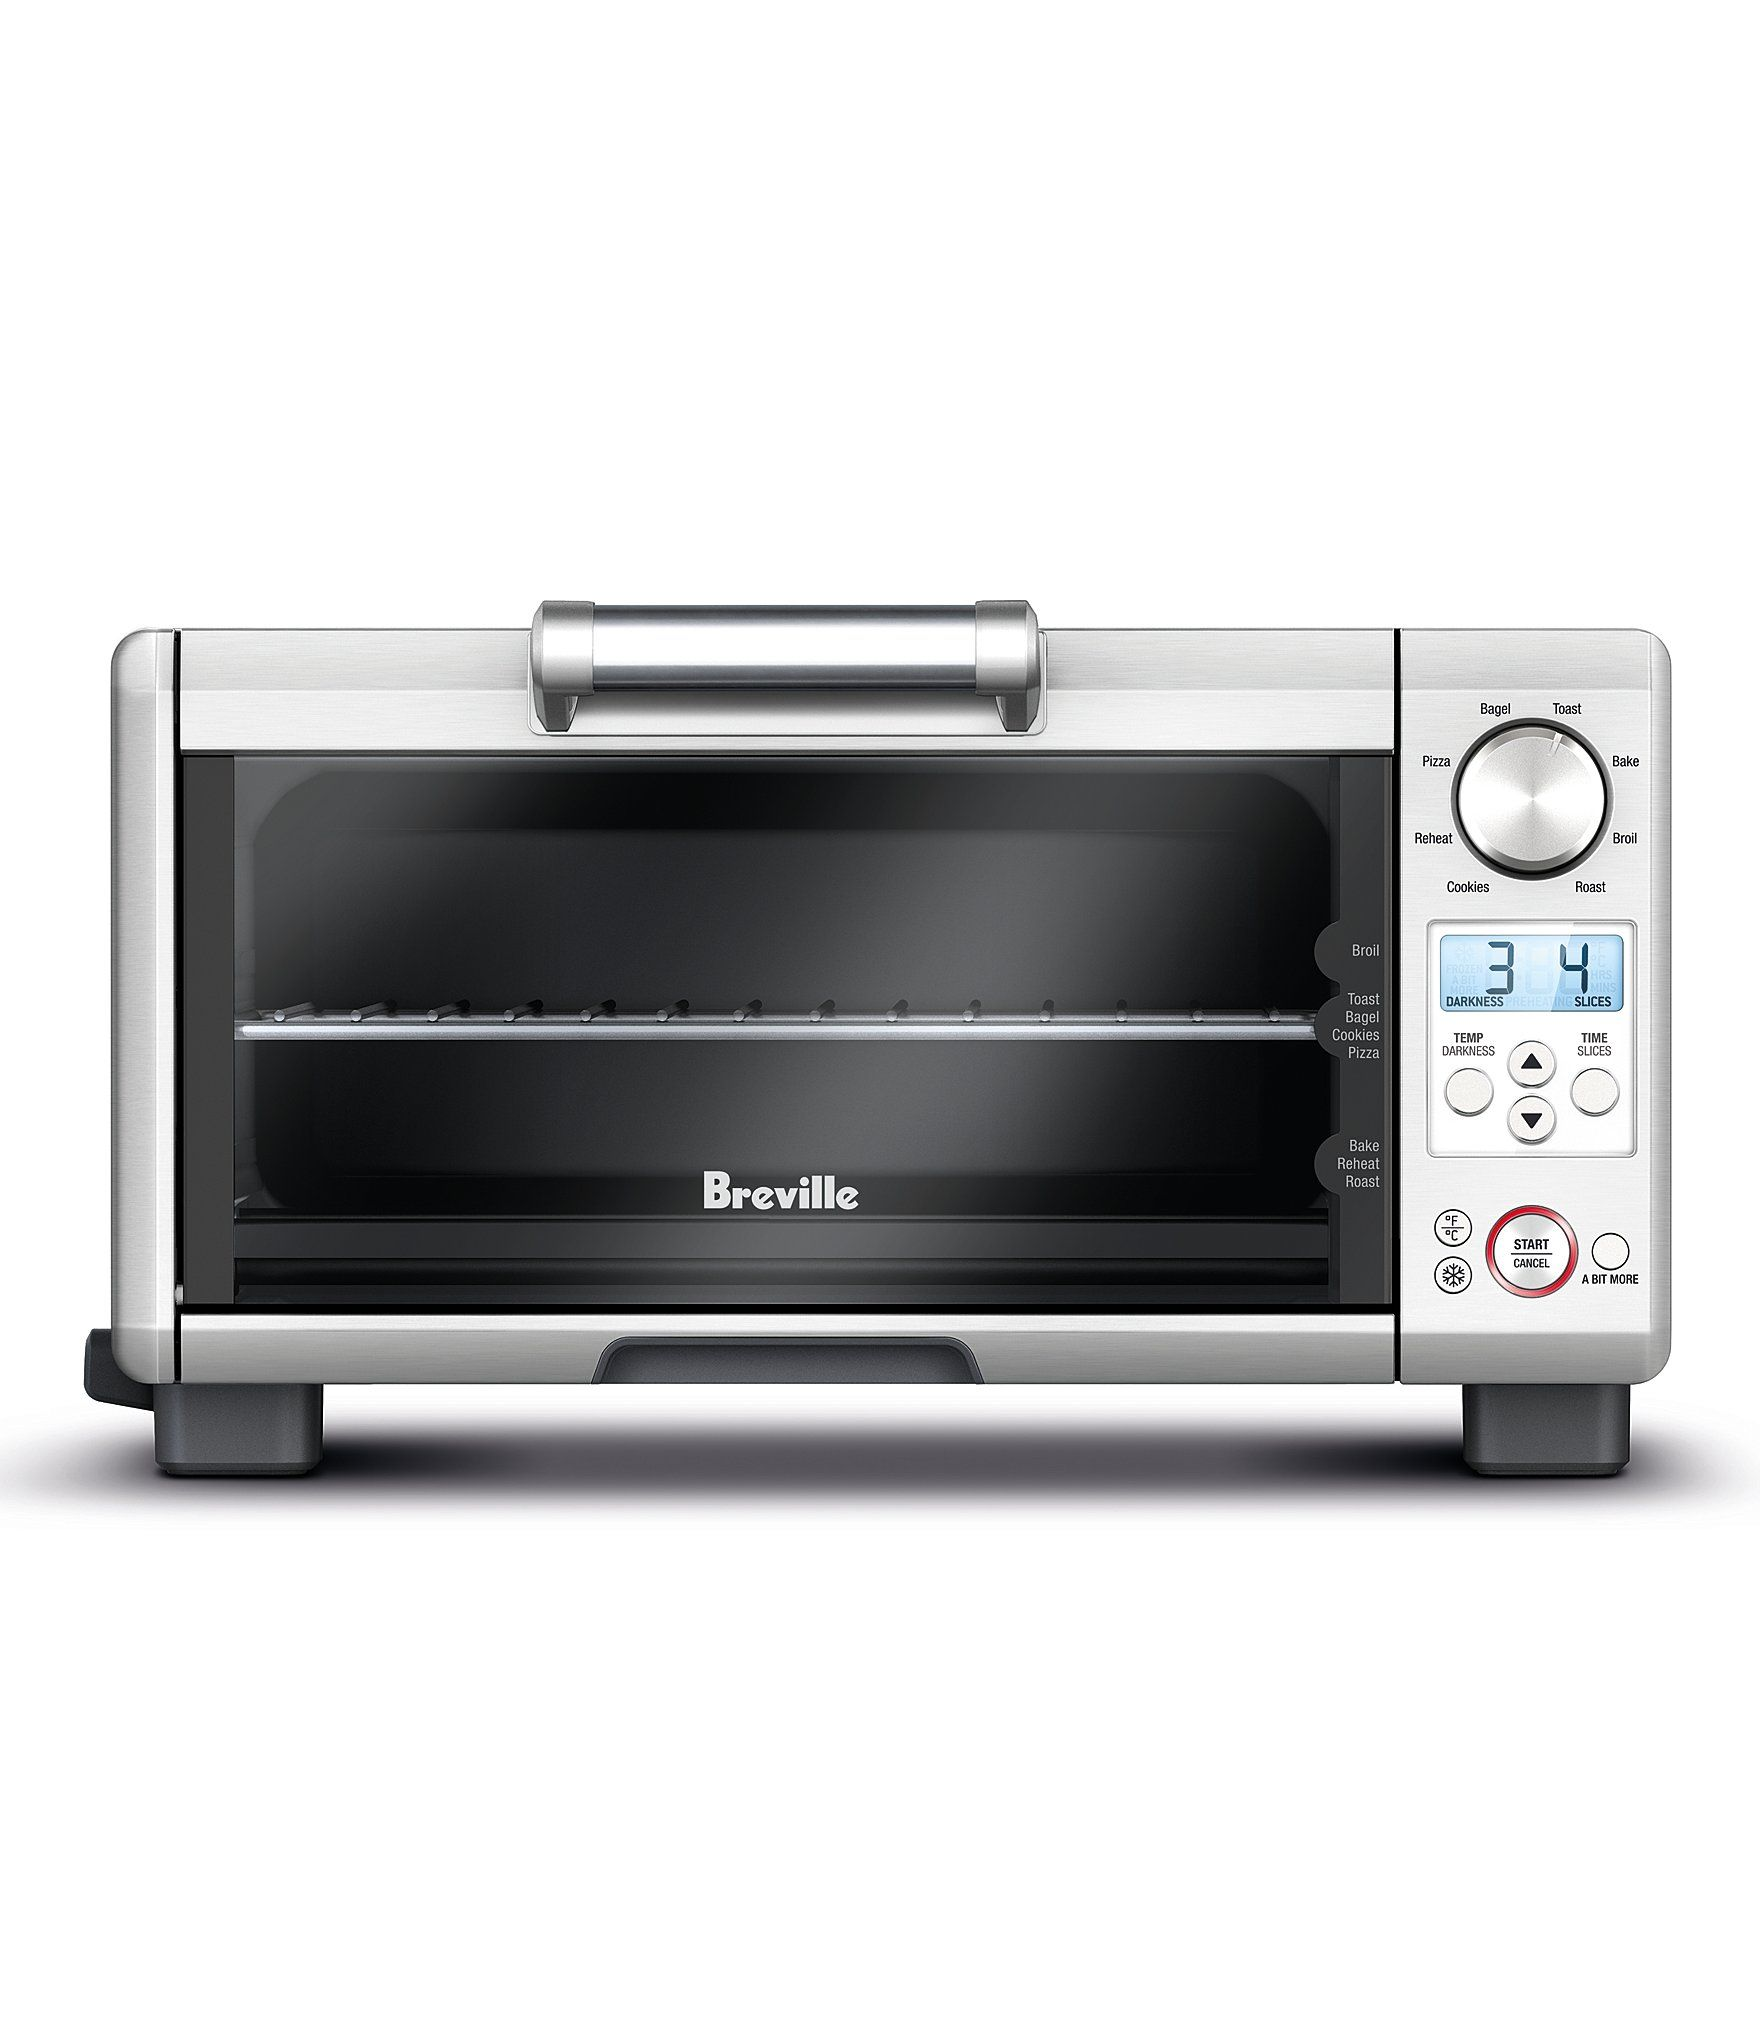 Breville Mini Smart Oven 8 Functions Toaster Oven Brushed Stainless Steel In 2020 Toaster Brushed Stainless Steel Oven